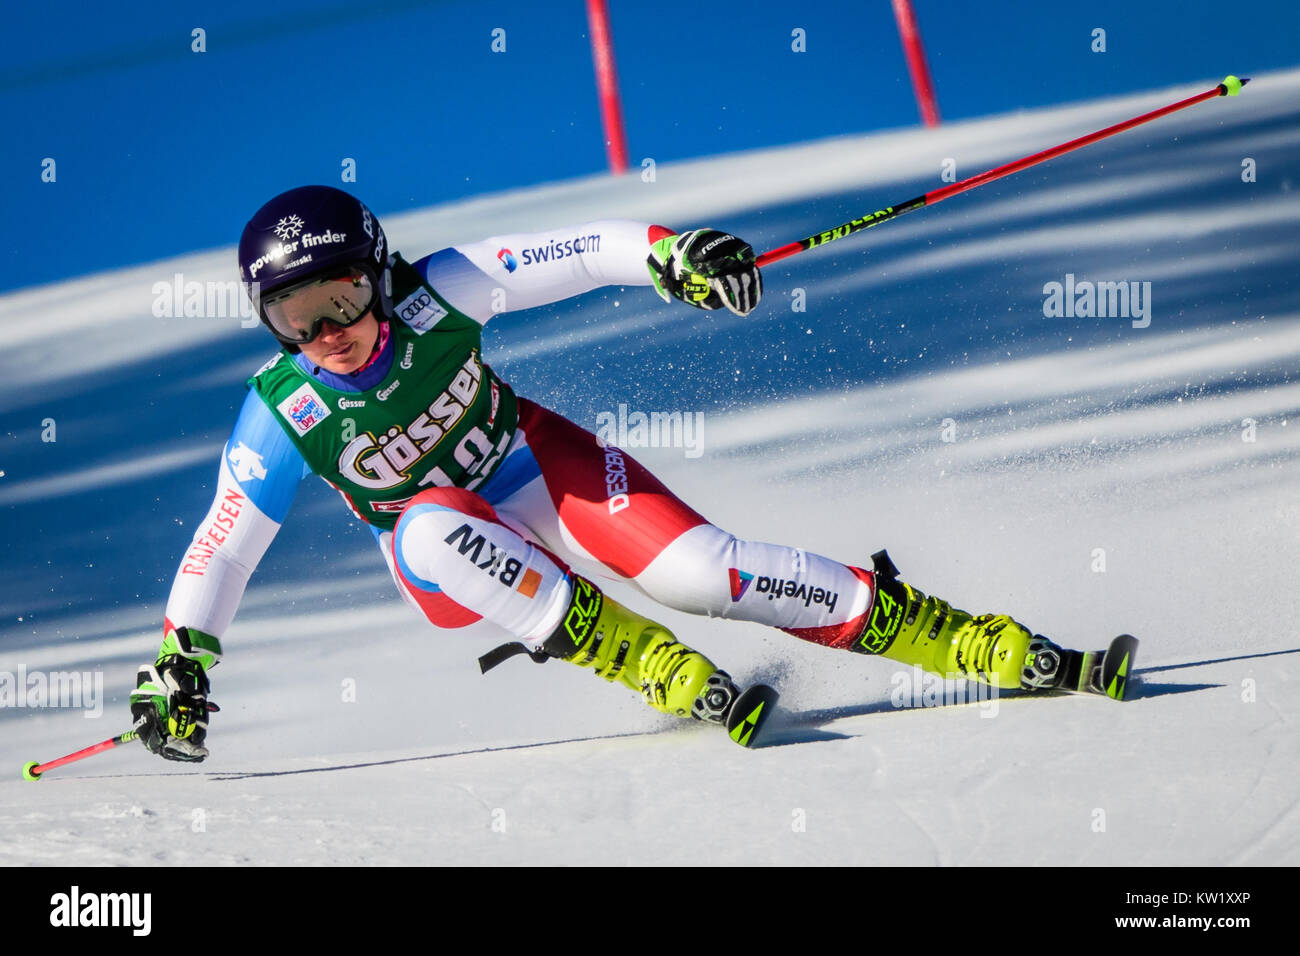 Lienz, Austria. 29th Dec, 2017. Simone Wild of Switzerland competes during the FIS World Cup Ladies Giant Slalom - Stock Image